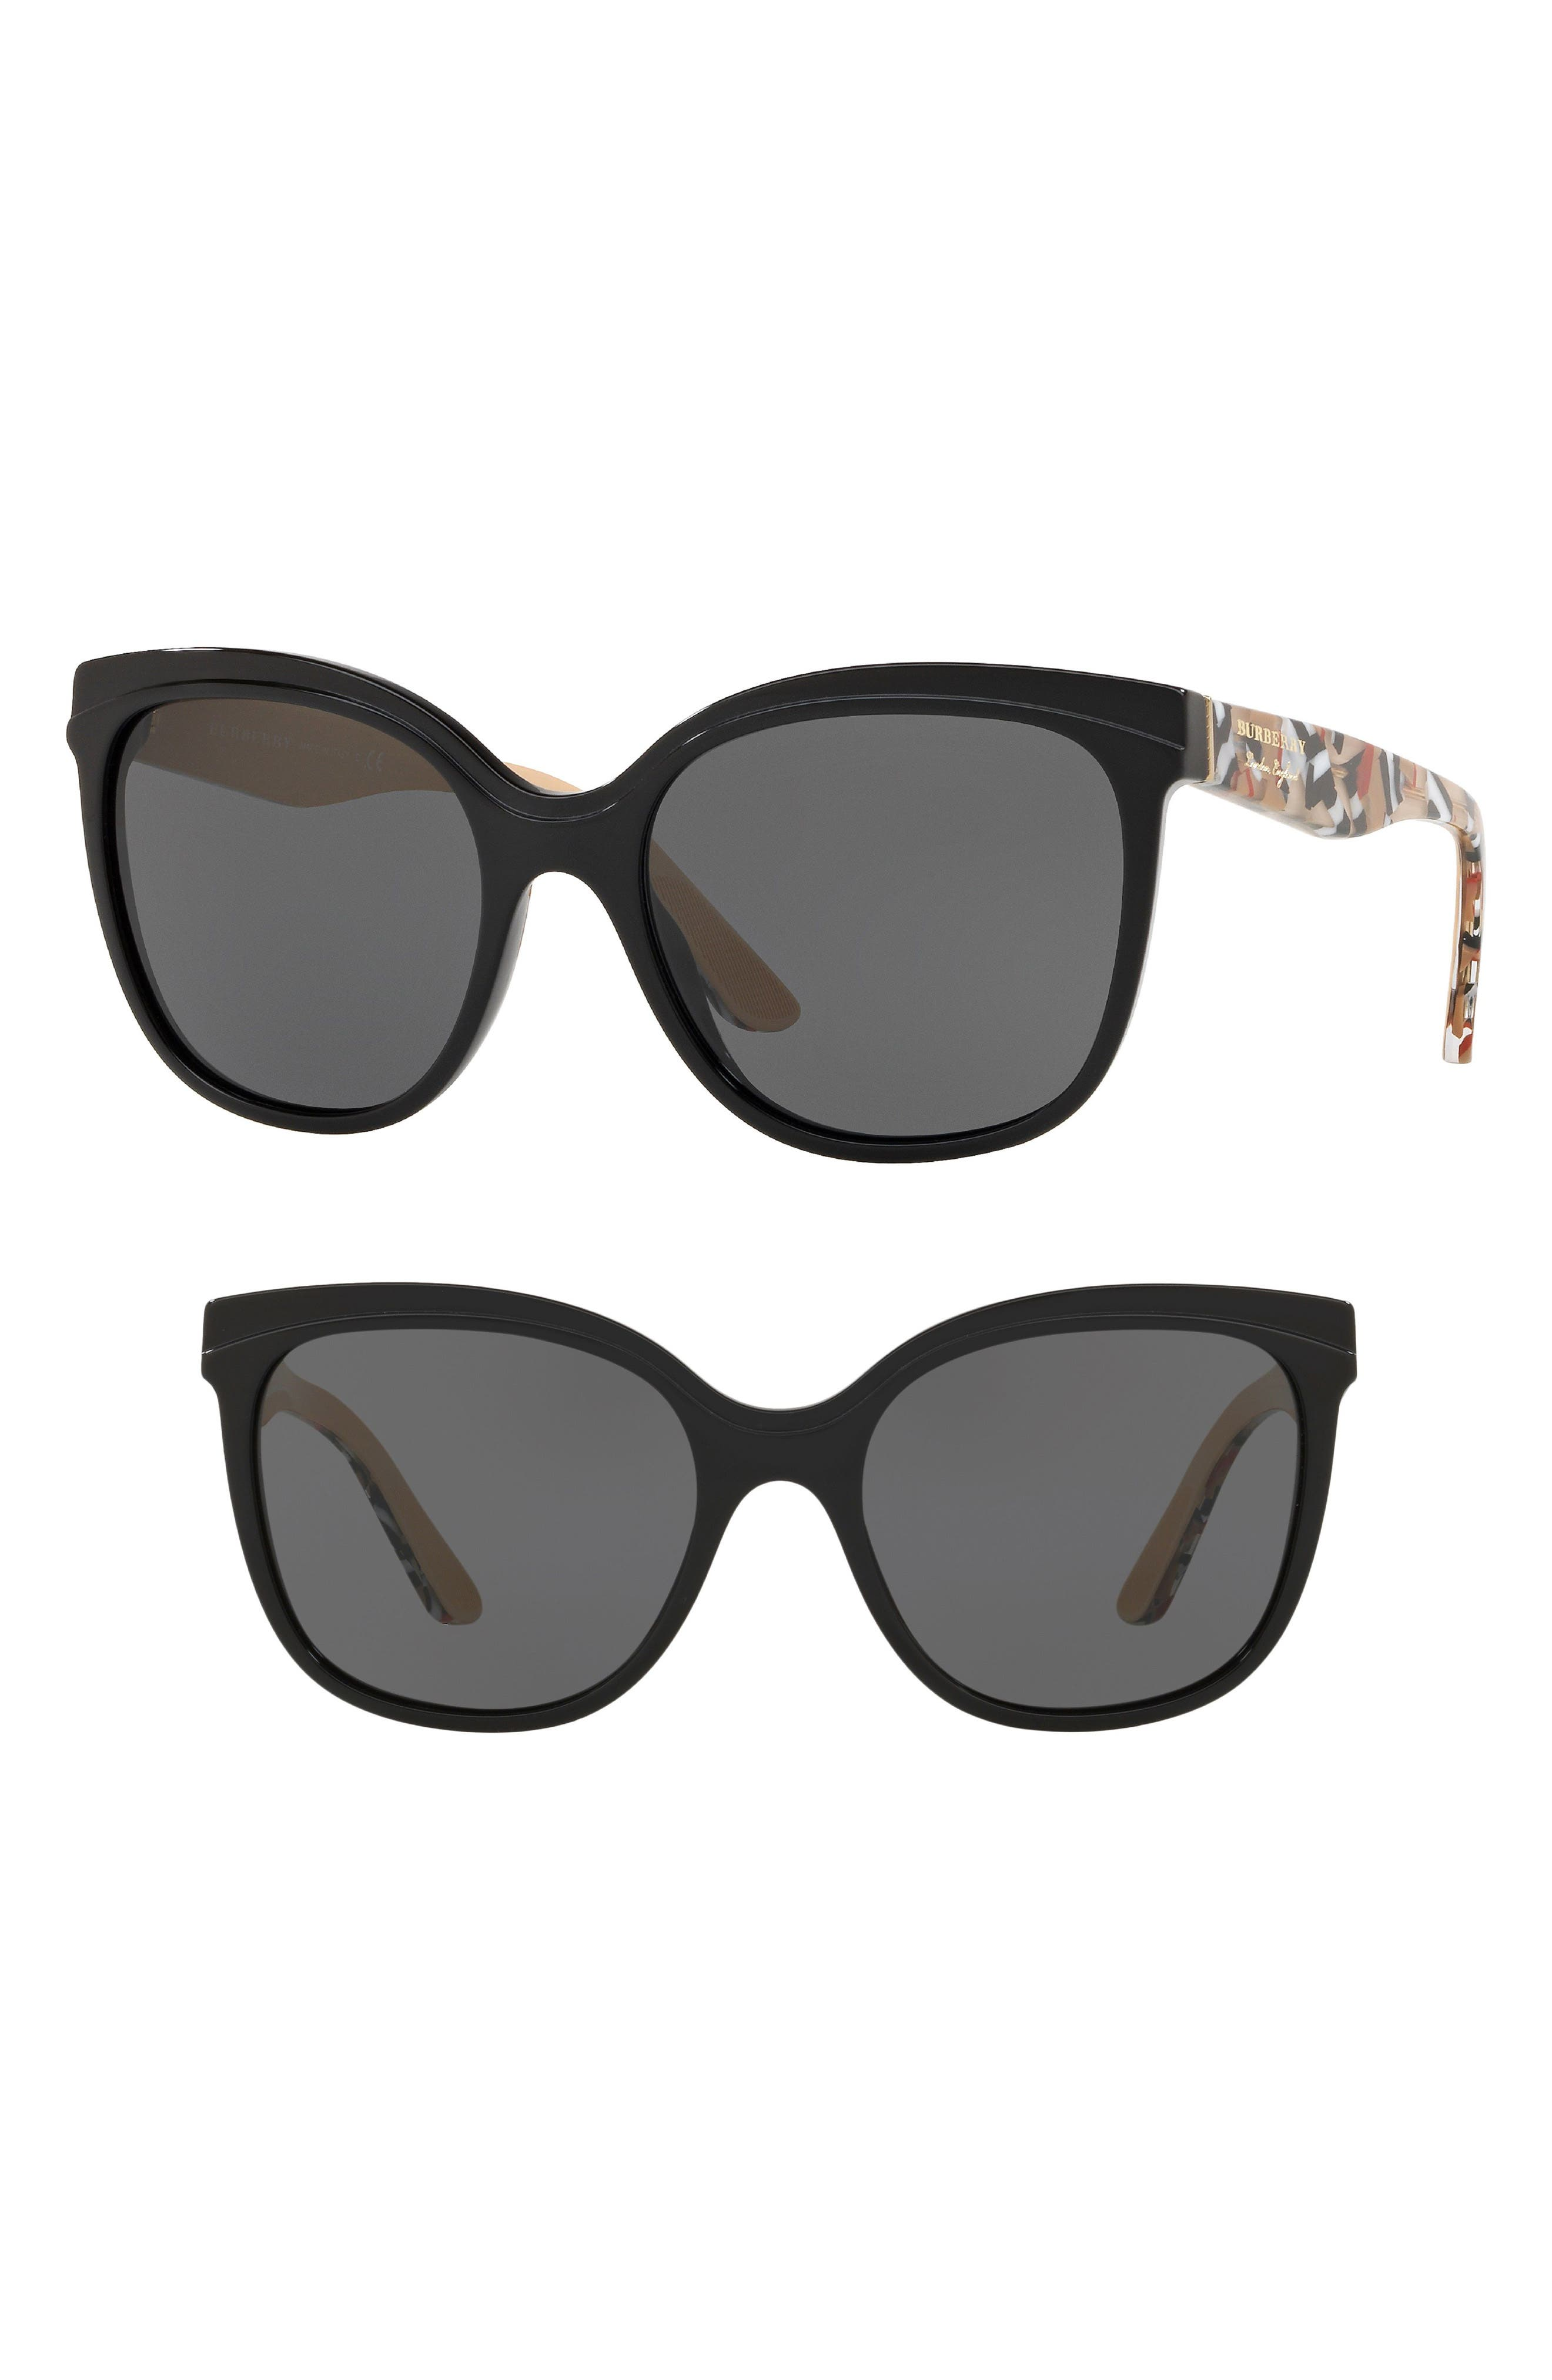 Marblecheck 55mm Square Sunglasses,                             Main thumbnail 1, color,                             BLACK SOLID